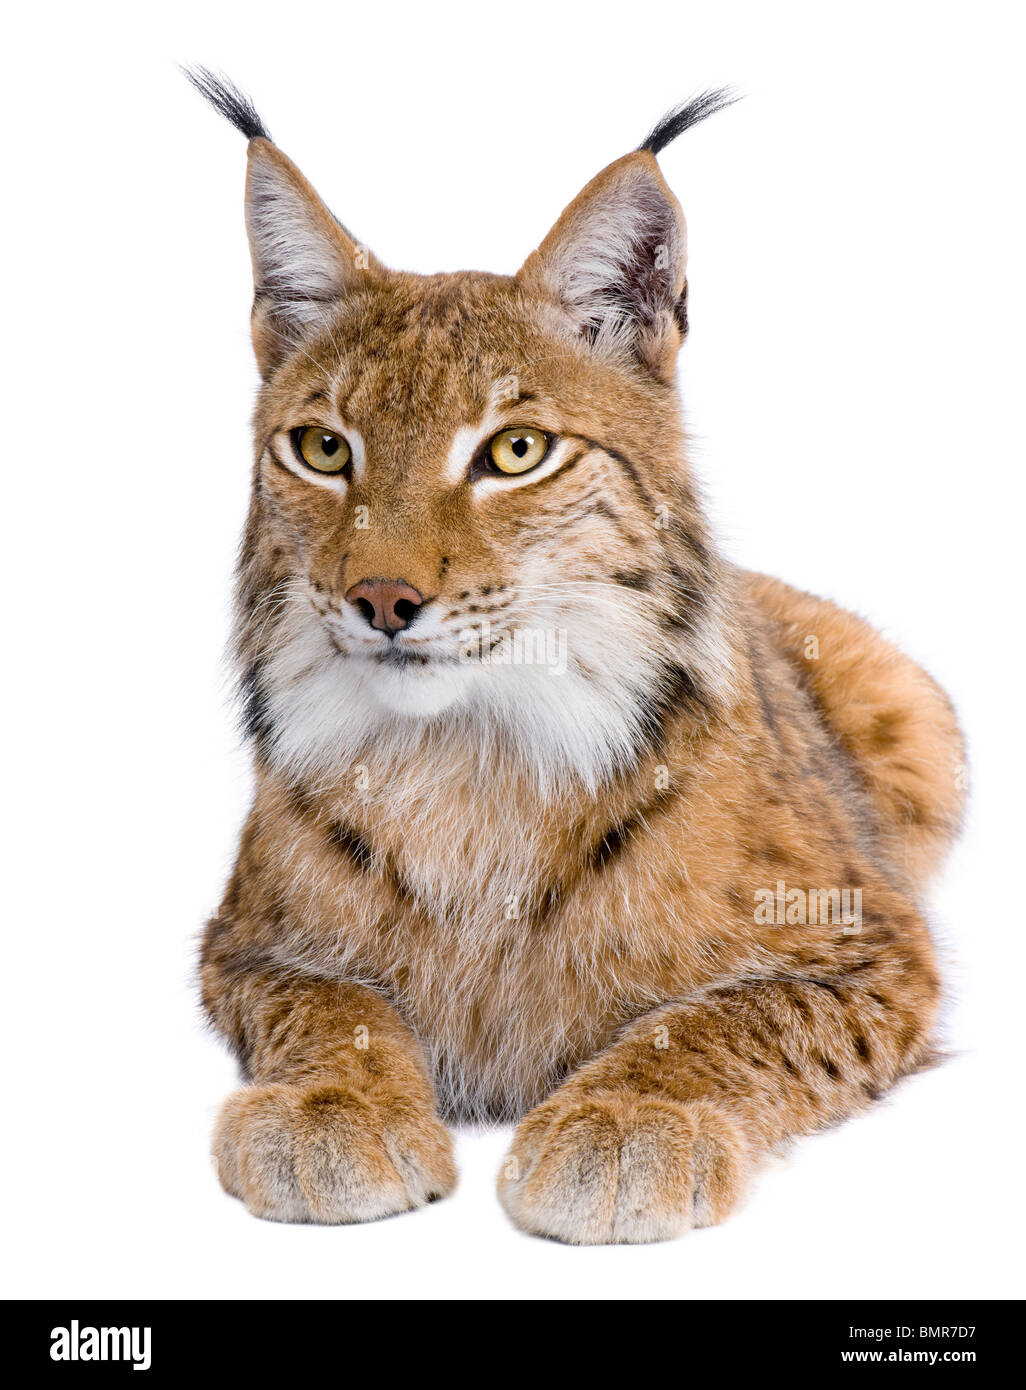 Eurasian Lynx, Lynx lynx, 5 years old, in front of a white background - Stock Image